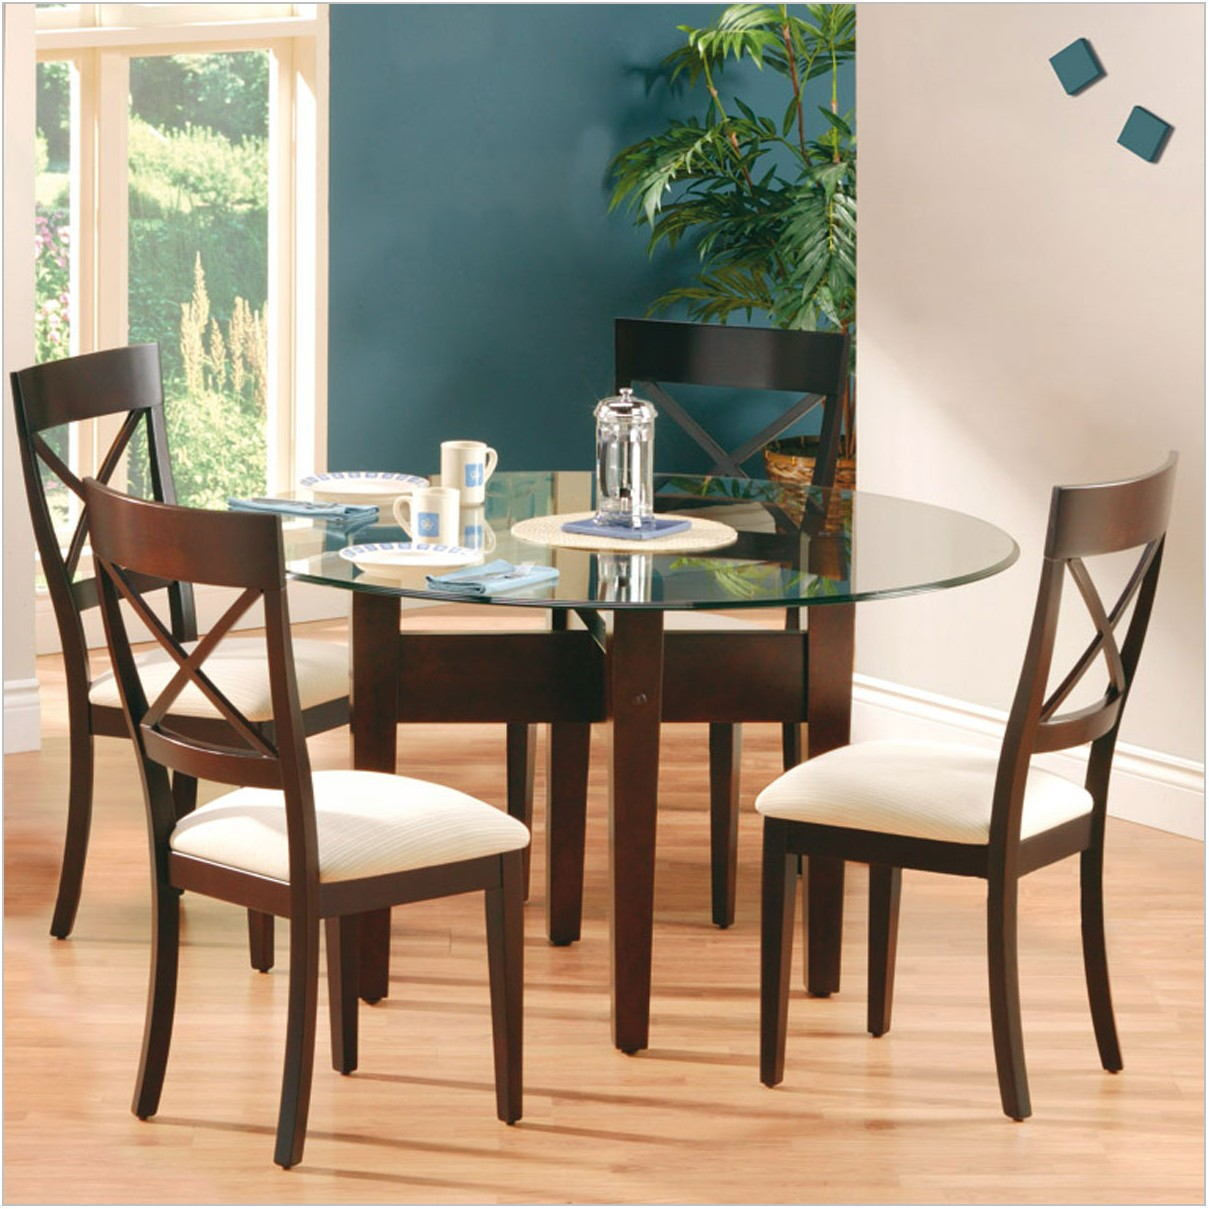 Mainstays Dining Room Set